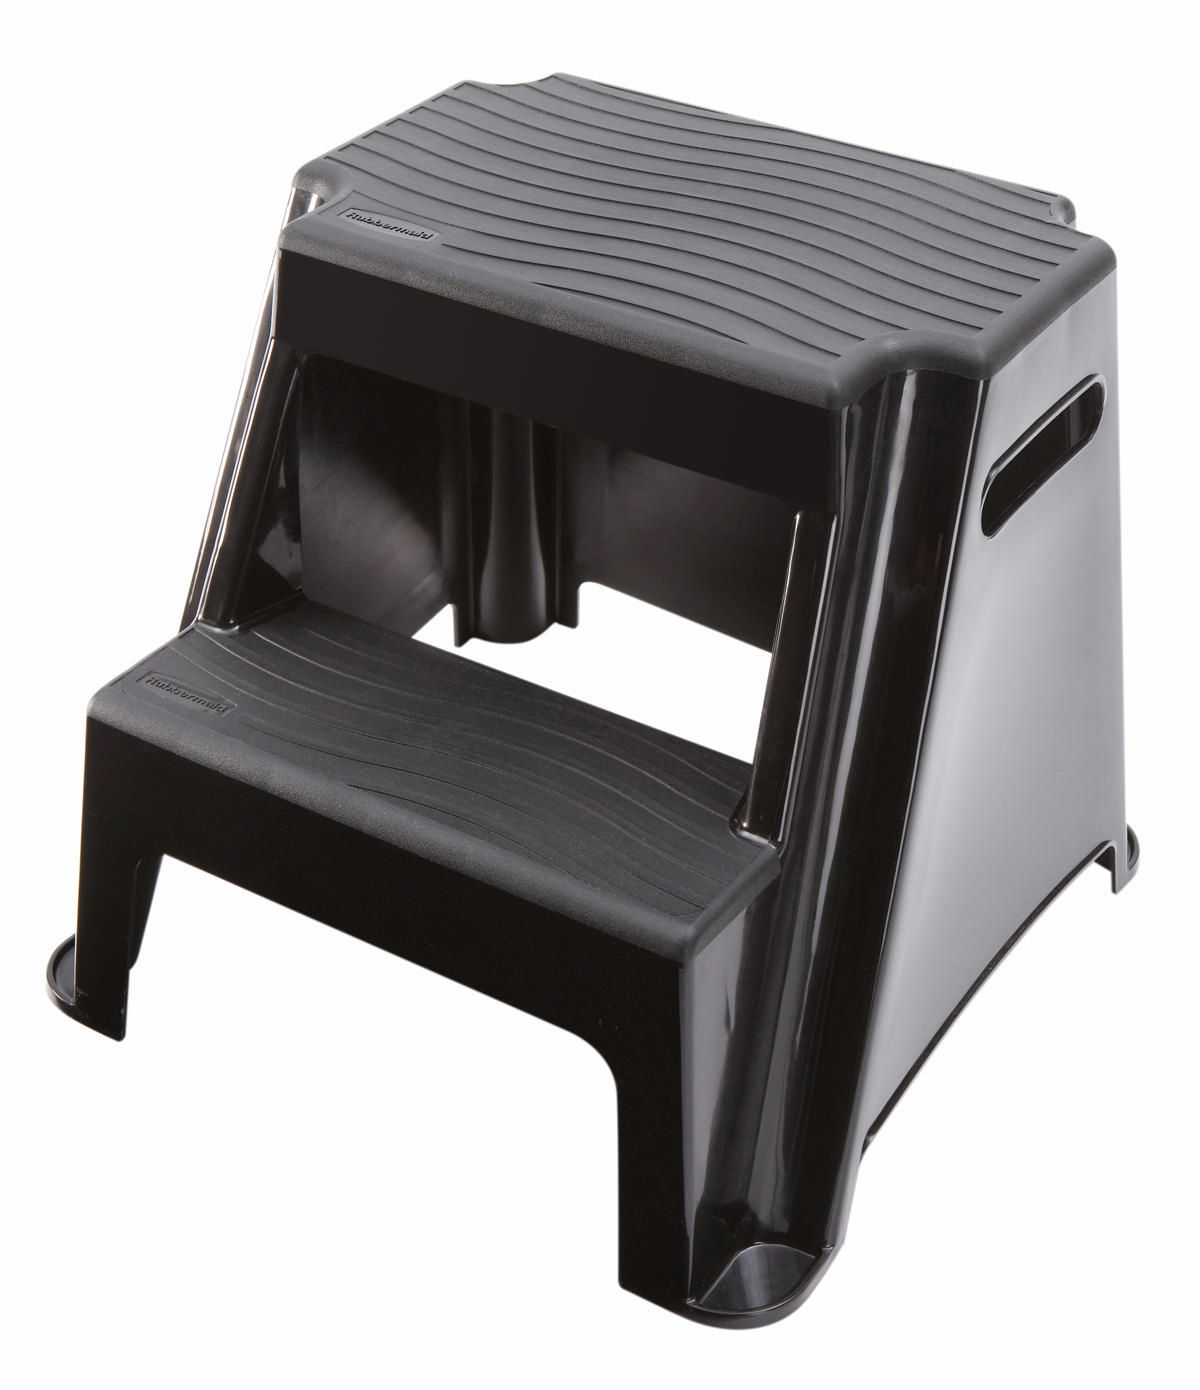 Rubbermaid 2-Step Molded Plastic Stool  sc 1 st  Walmart Canada & Rubbermaid Folding 1-Step Plastic Stool | Walmart Canada islam-shia.org